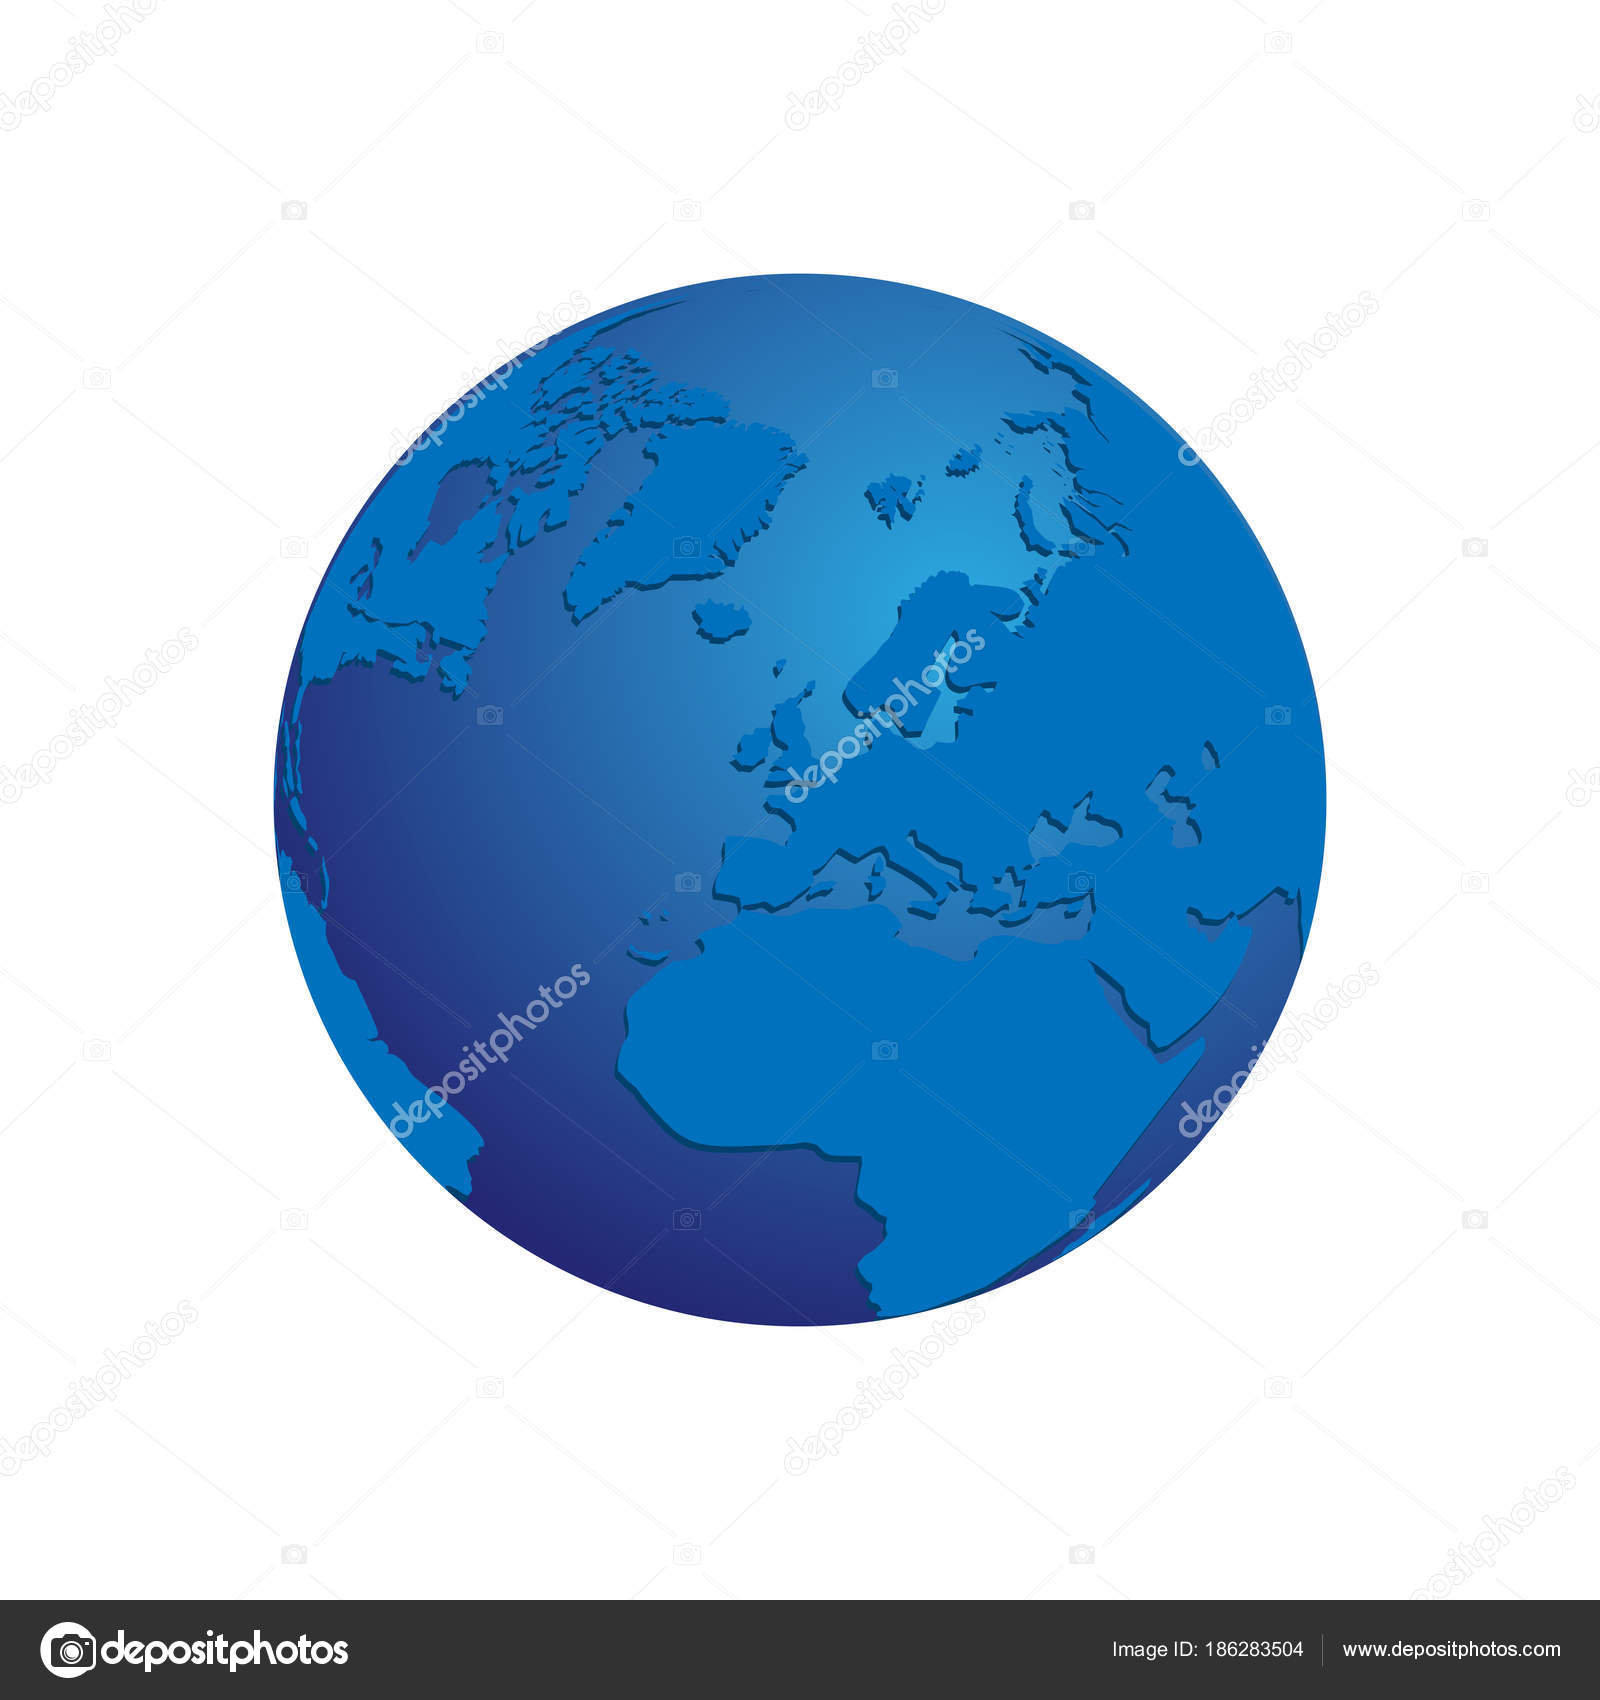 Realistic blue 3d world map globe isolated background vector eps 10 realistic blue 3d world map globe isolated background vector eps 10 stock vector gumiabroncs Choice Image